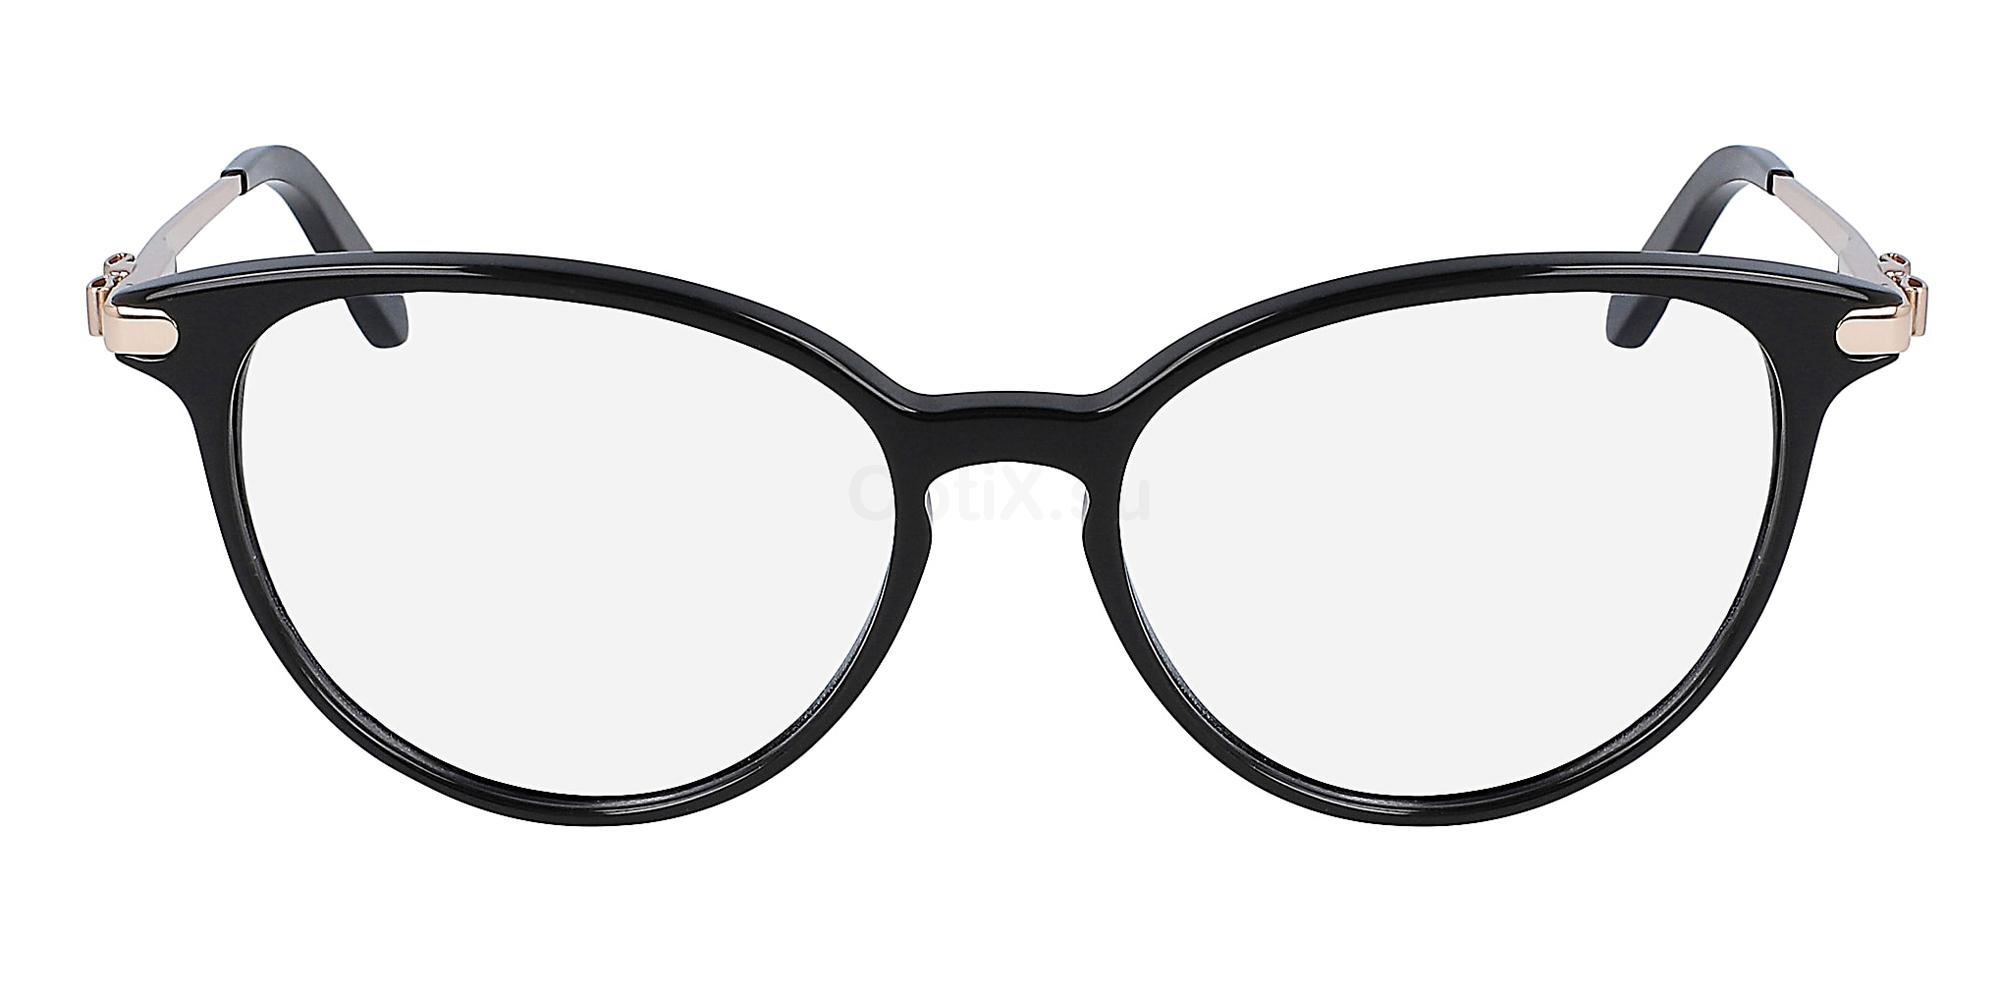 001 SF2862 Glasses, Salvatore Ferragamo